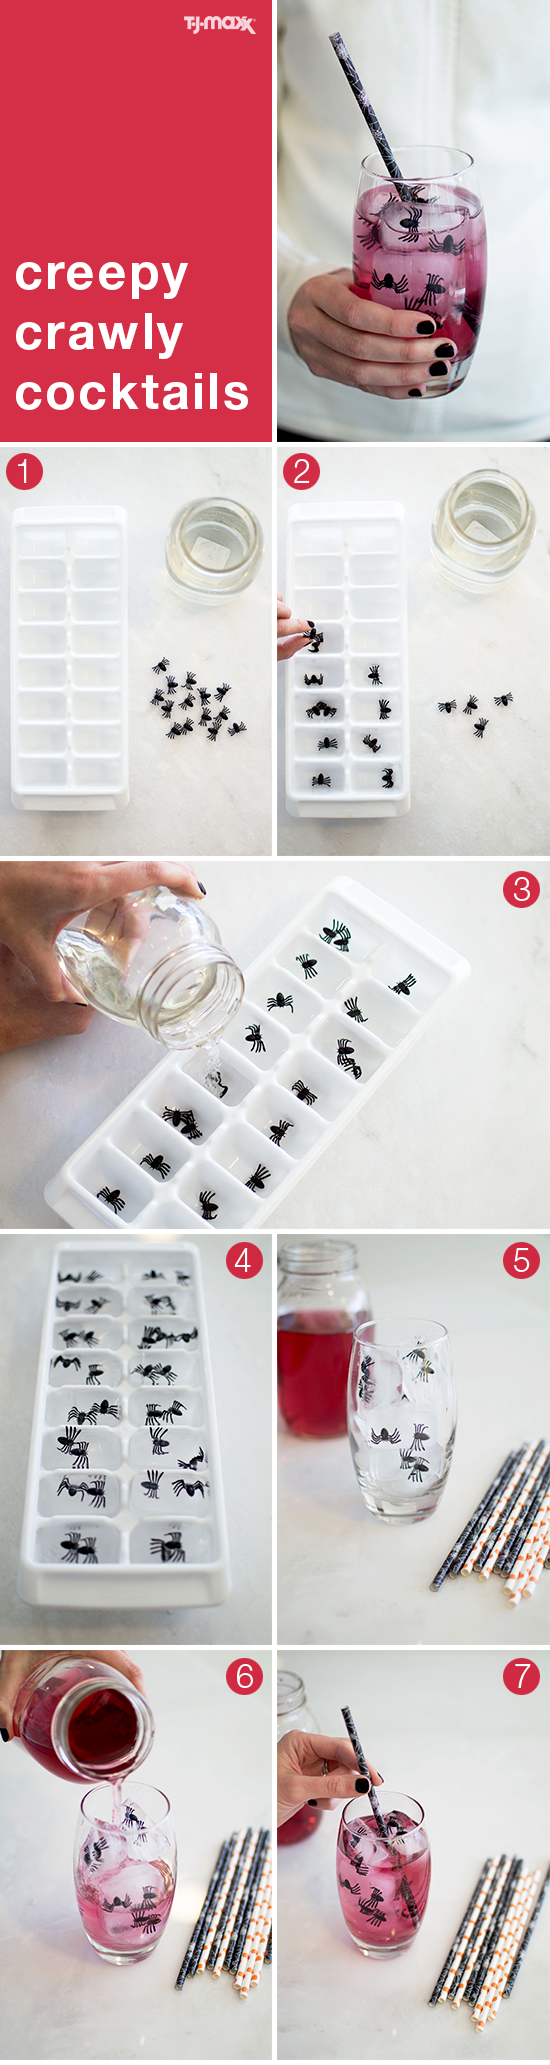 A Halloween party DIY: Give ice cubes a spooky twist by adding in tiny toy spiders. Start by putting the creepy crawlers in an empty ice cube tray. Fill with water and freeze overnight. Serve with your favorite punch or cocktail and a festive paper straw.